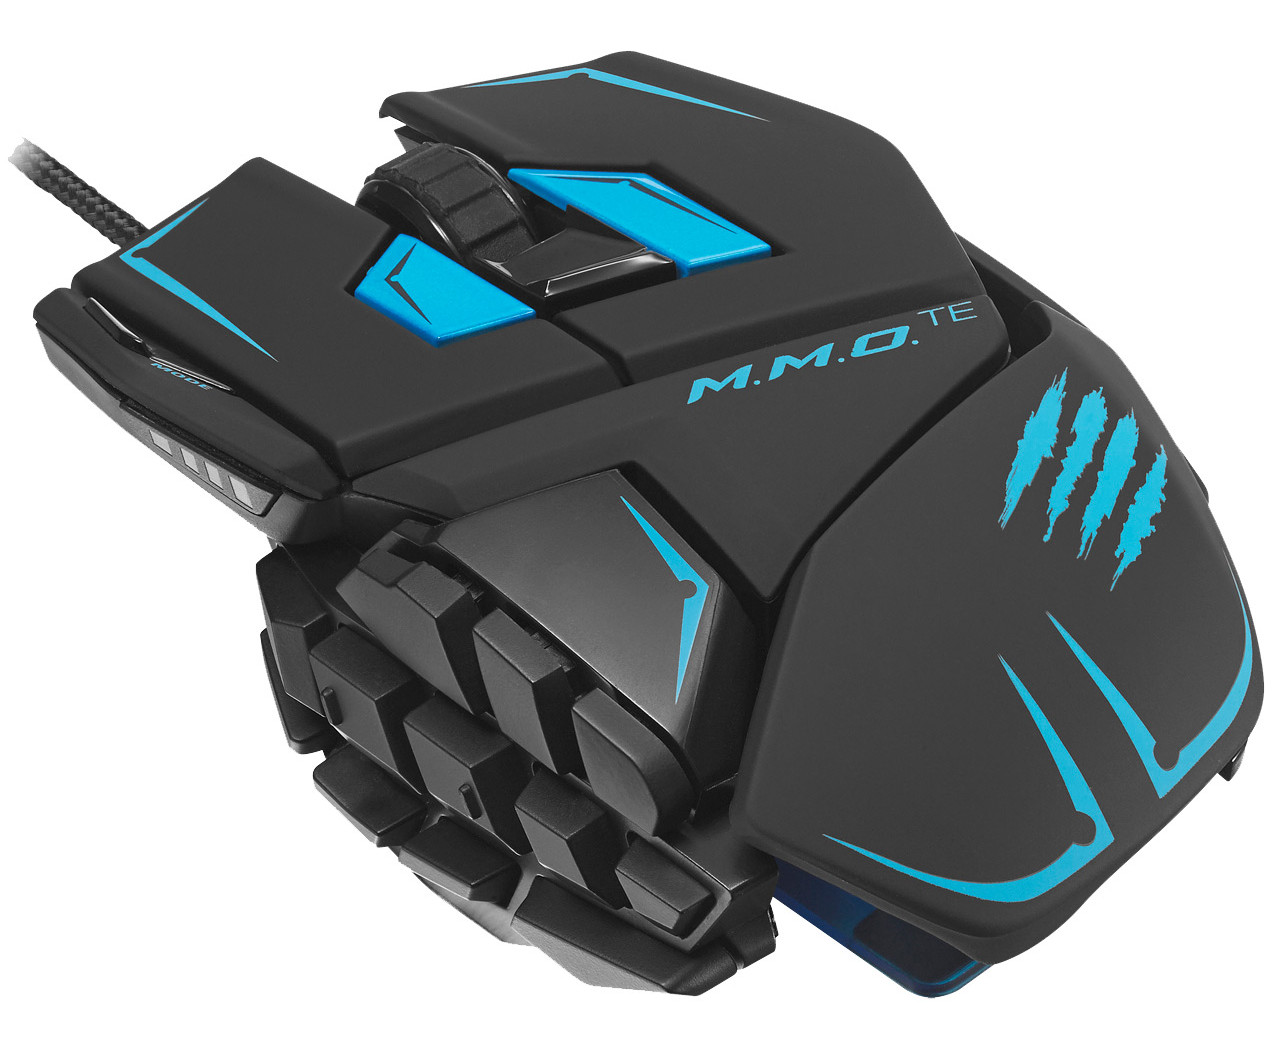 News Posts Matching Mad Catz Techpowerup Madcatz Strikete Tournament Edition Gaming Keyboard Announces The Mmote Mouse For Pc And Mac